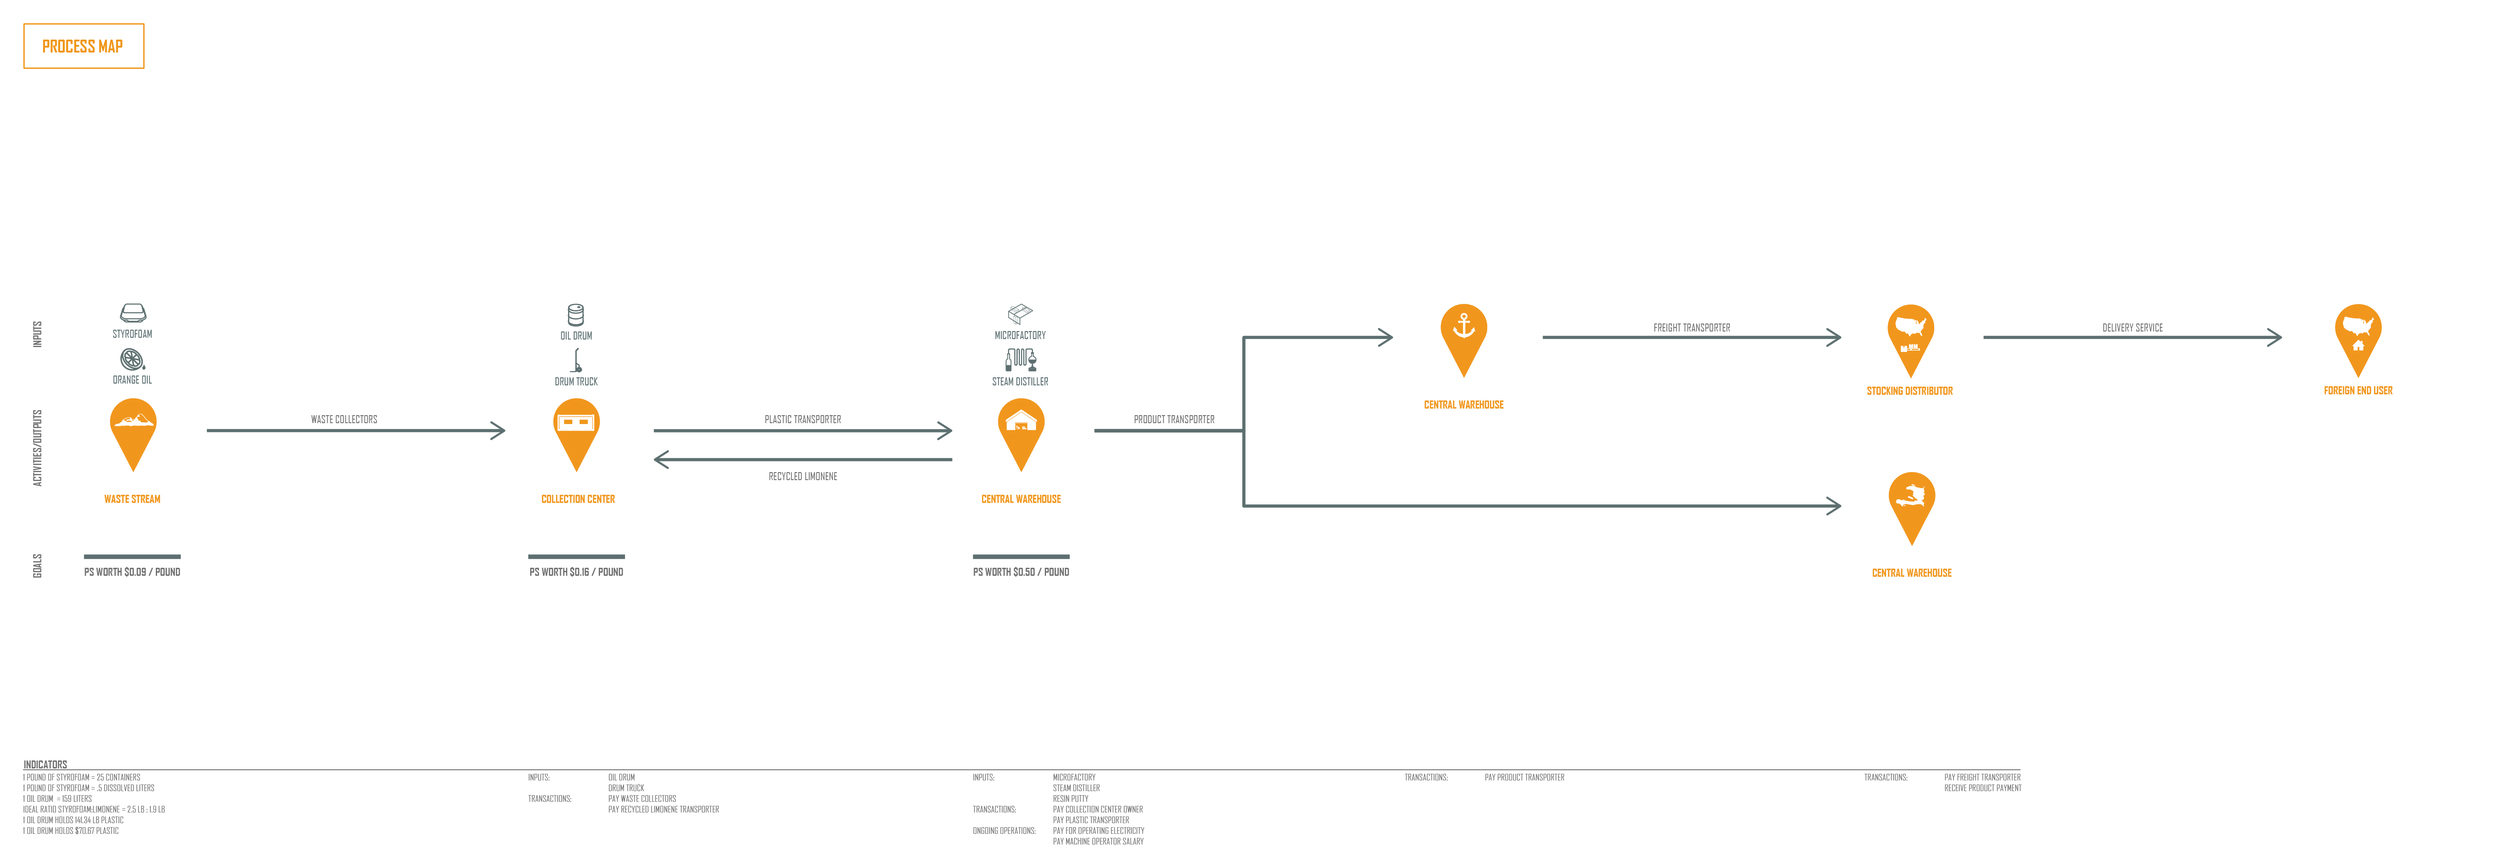 03_Video and Process Map-02.jpg